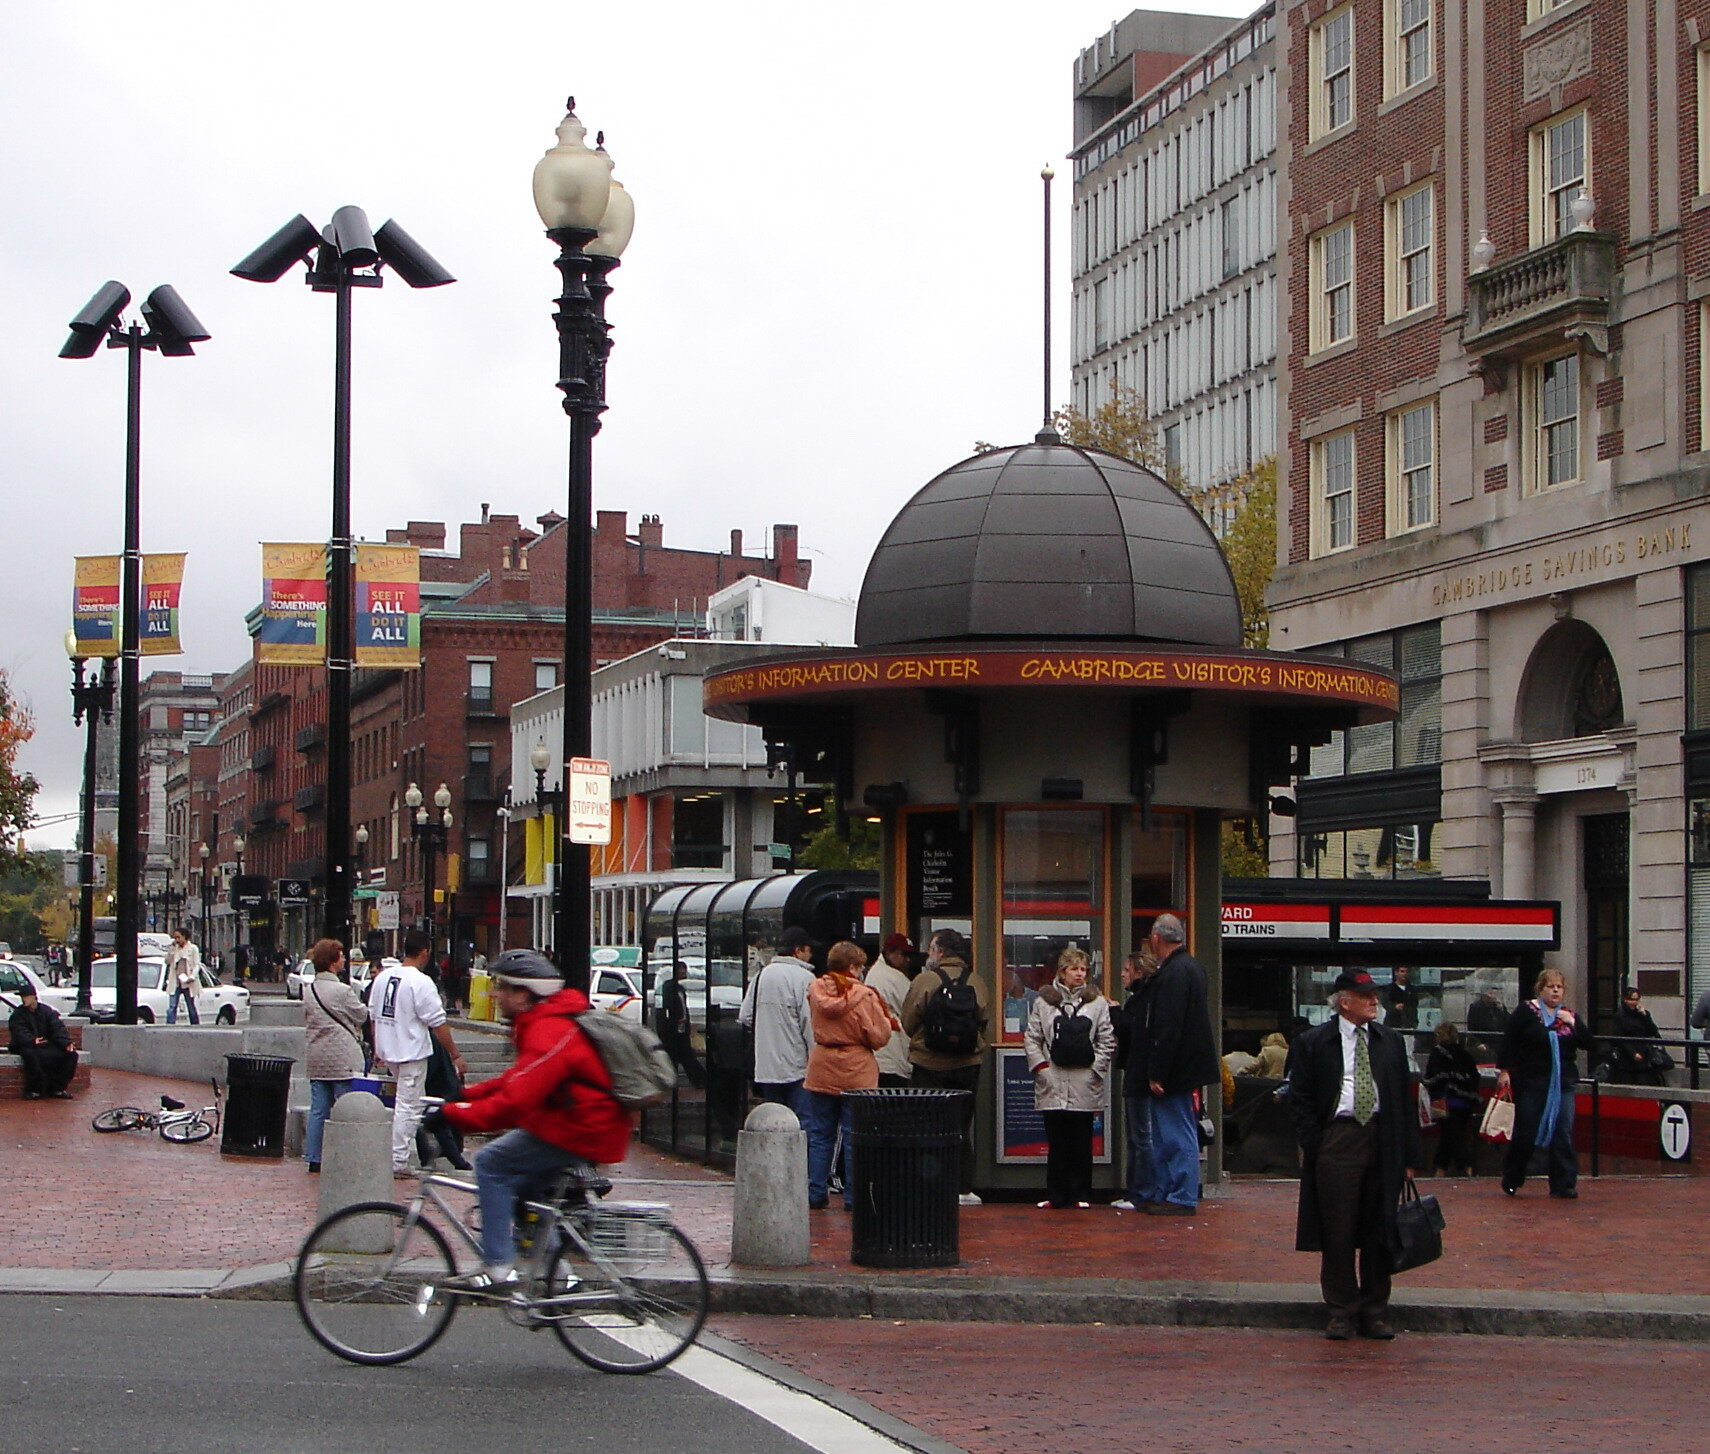 Outdoor directional speakers for Kiosks, Harvard Square